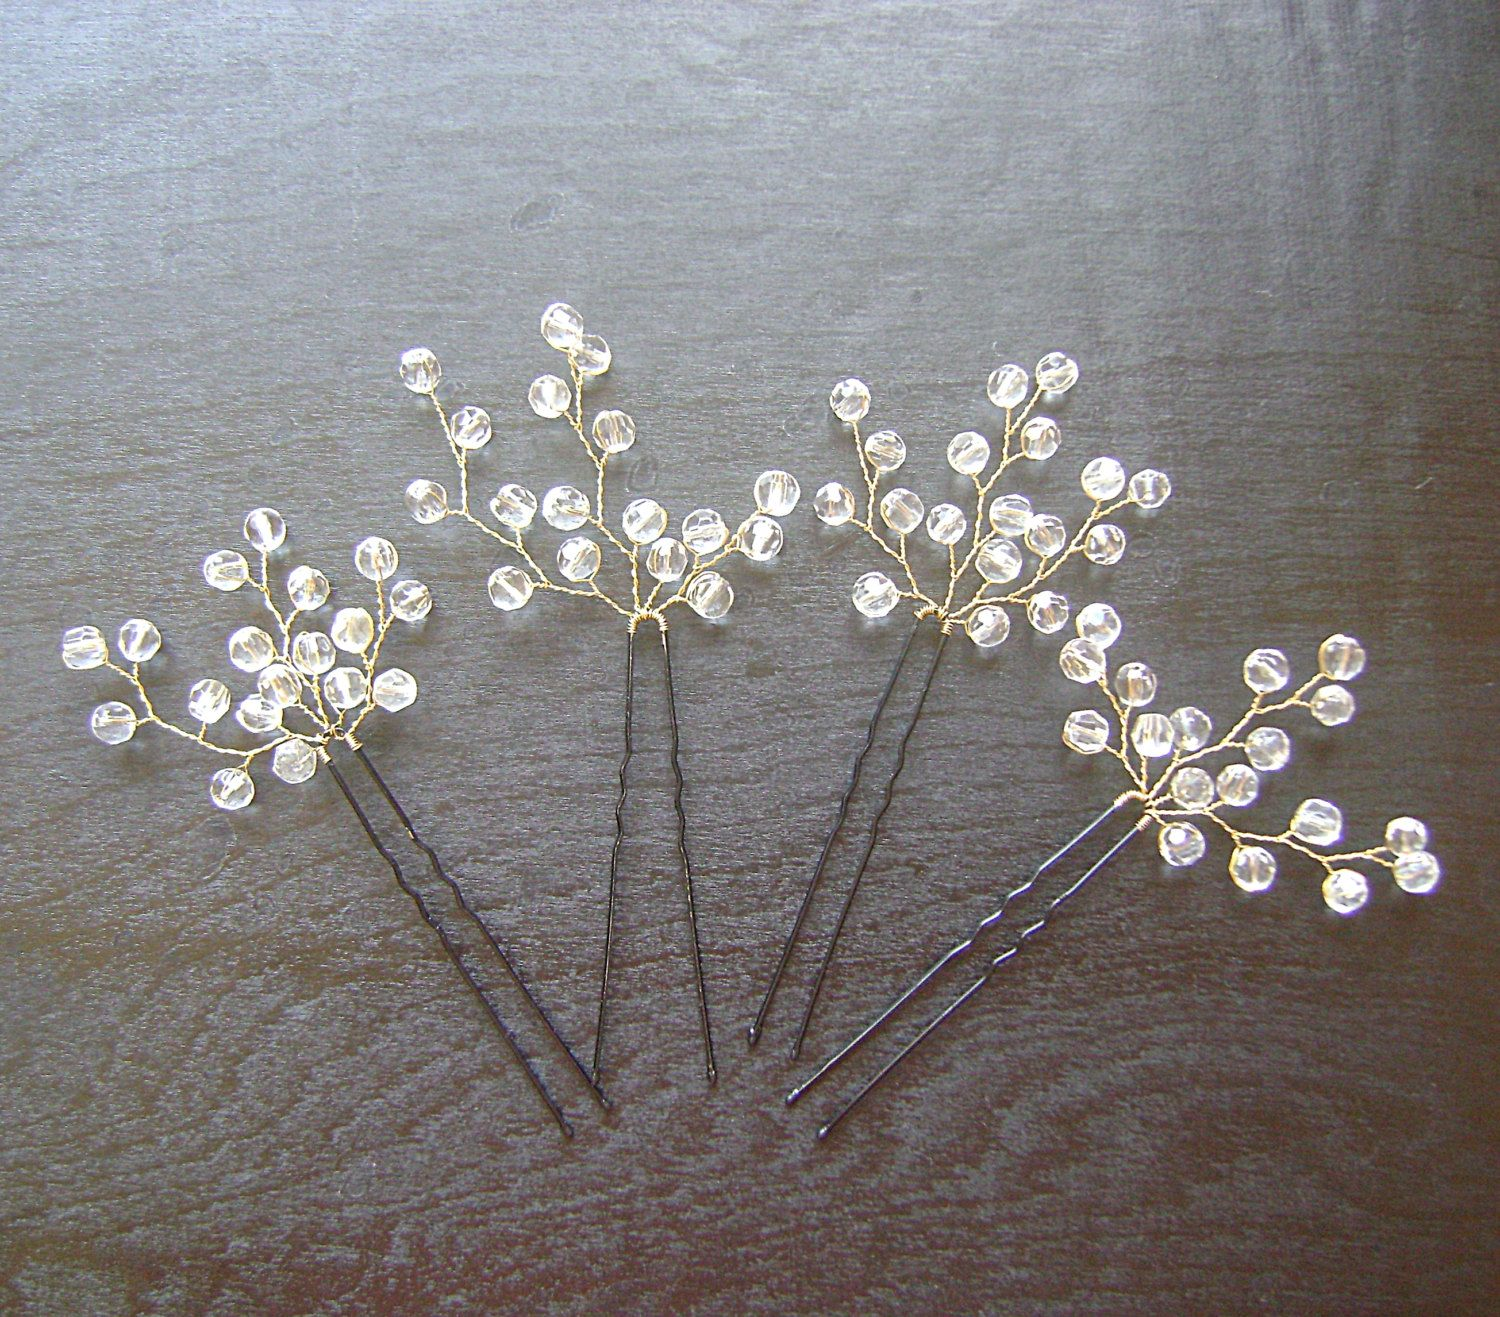 bridal crystals hair pin wedding hair accessories by prettynatali 27 00